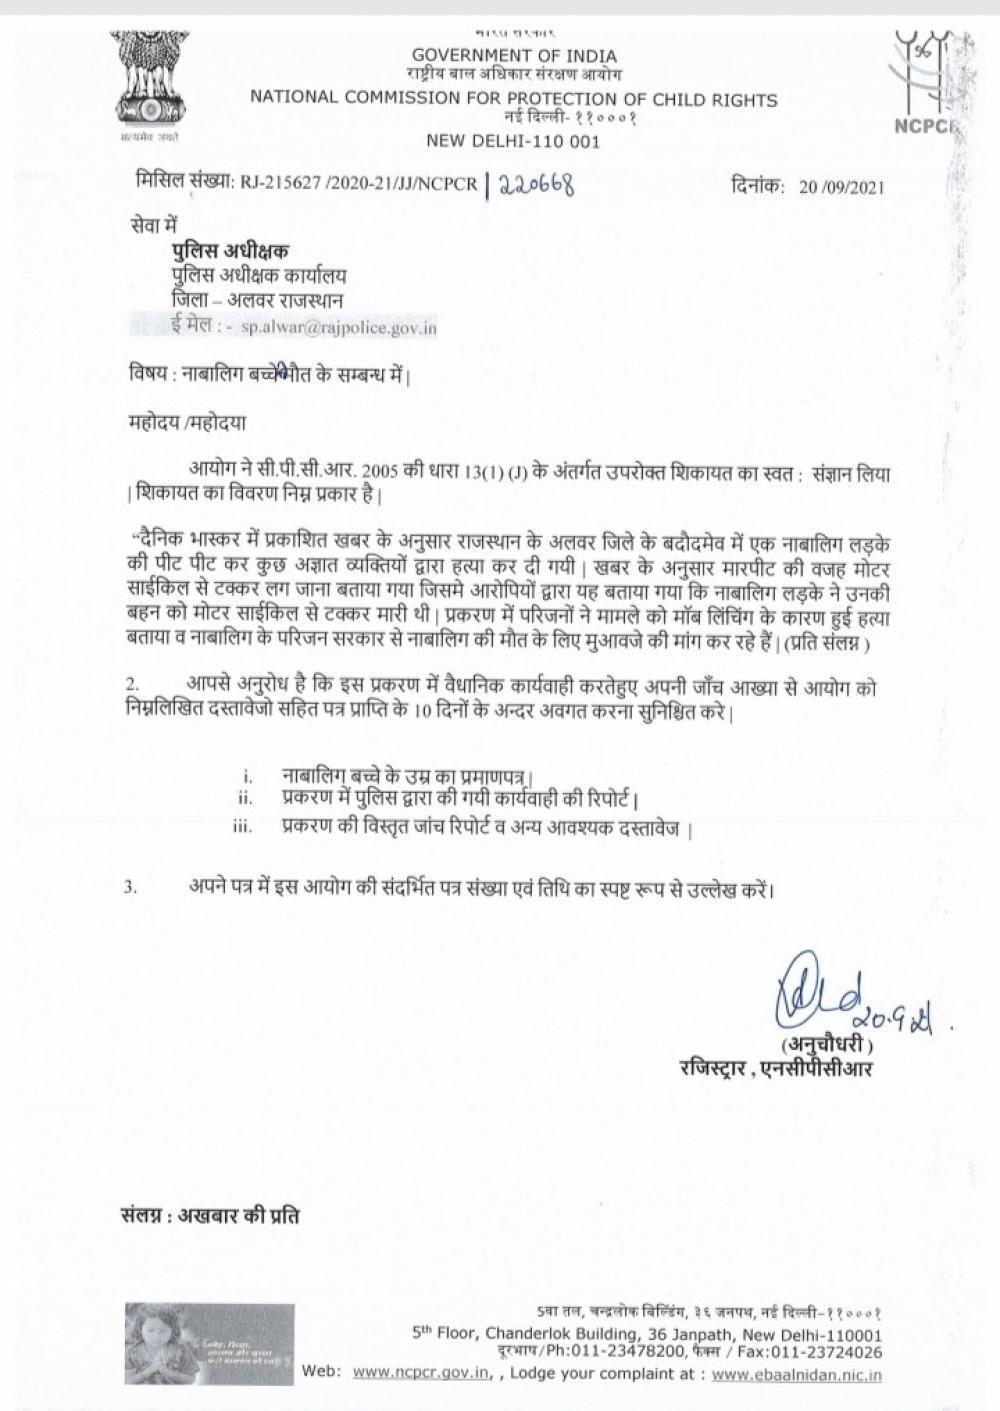 The Weekend Leader - NCPCR sends notice to police over lynching of Dalit youth in Alwar